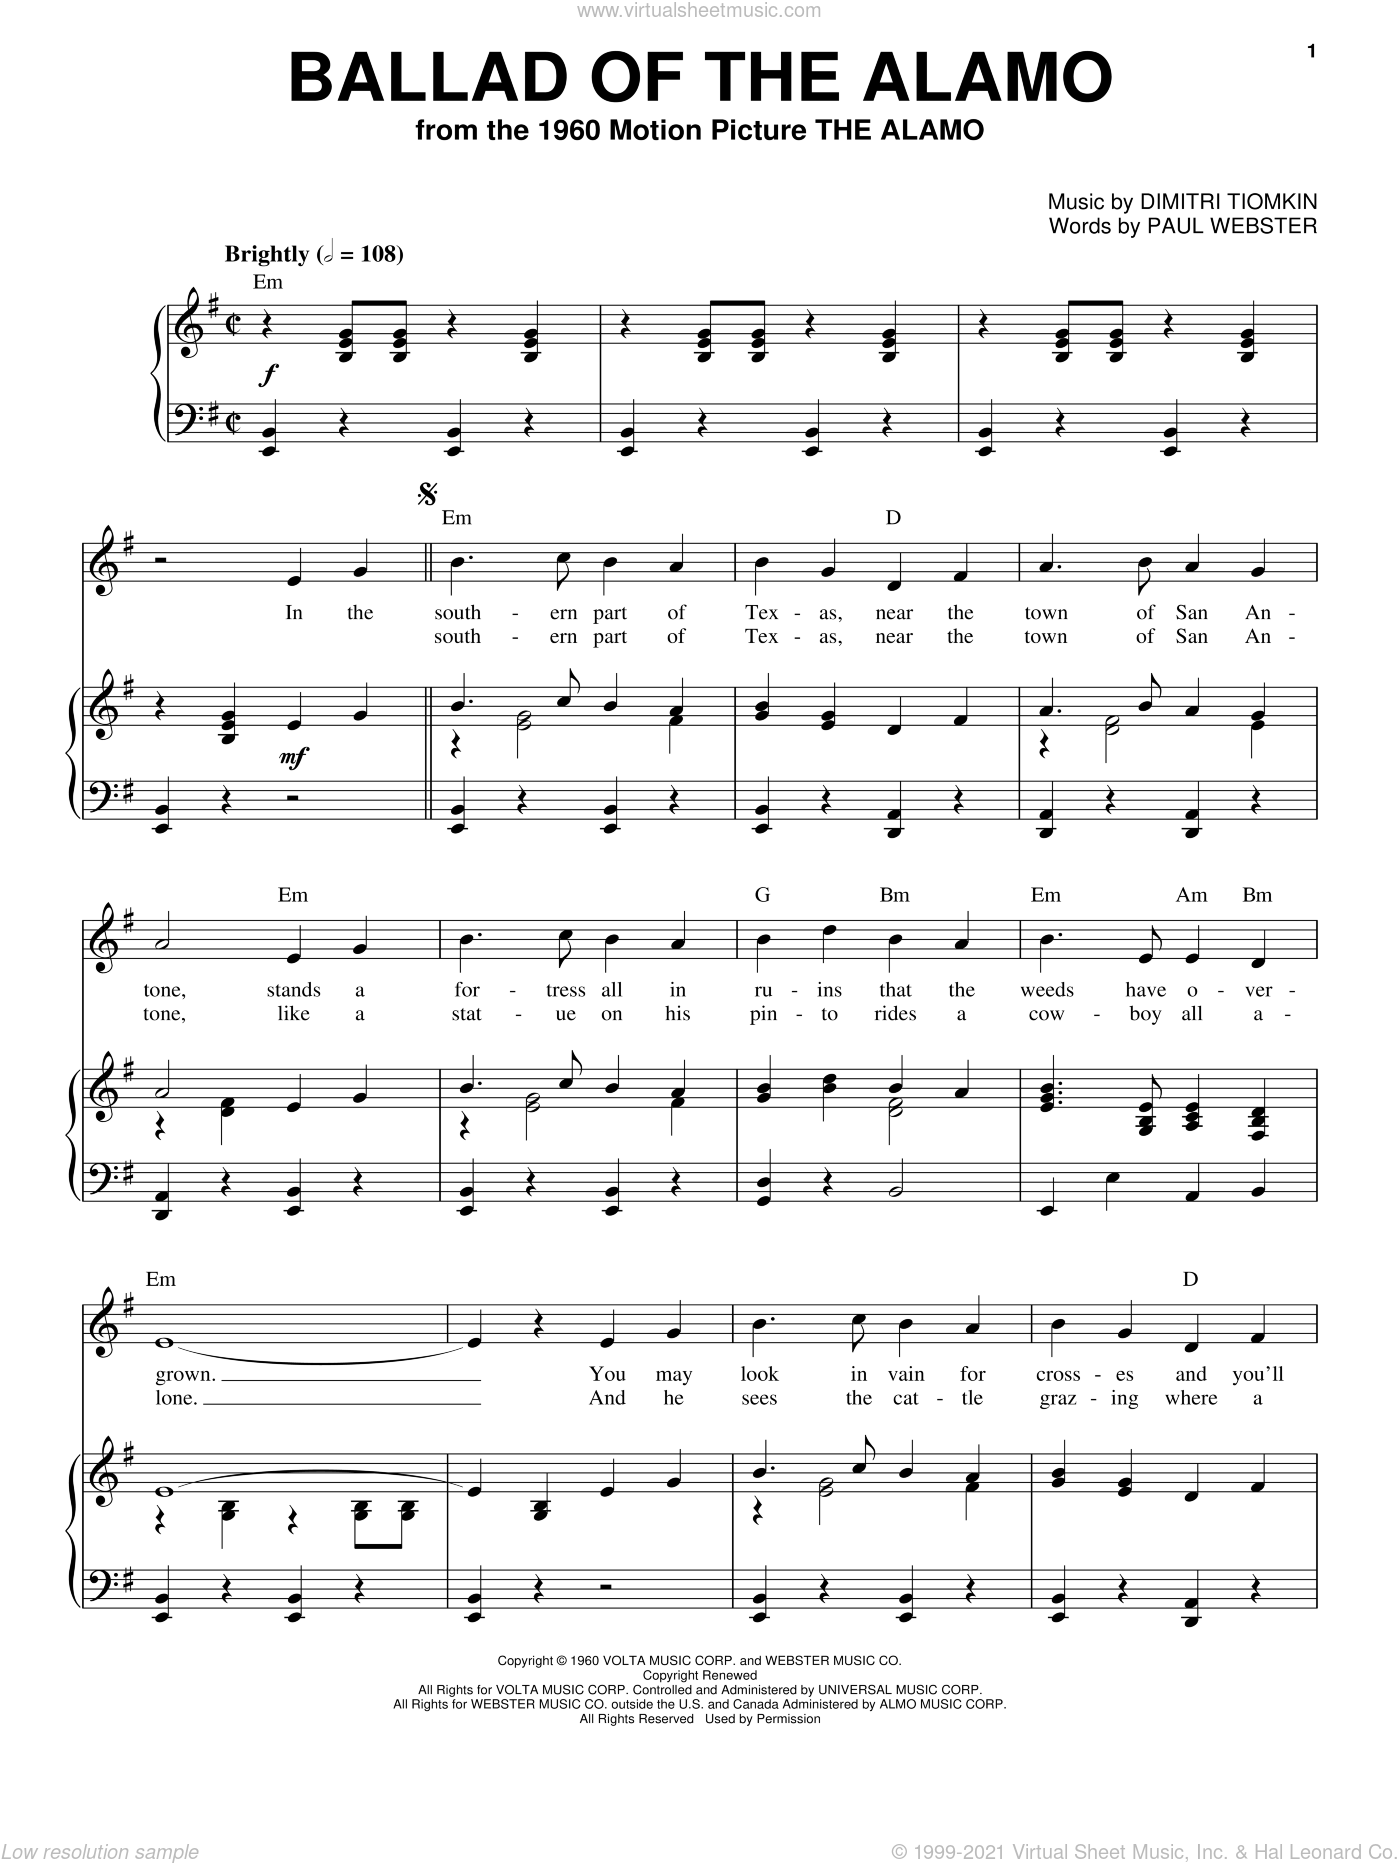 Ballad Of The Alamo sheet music for voice, piano or guitar by Dimitri Tiomkin and Paul Francis Webster. Score Image Preview.